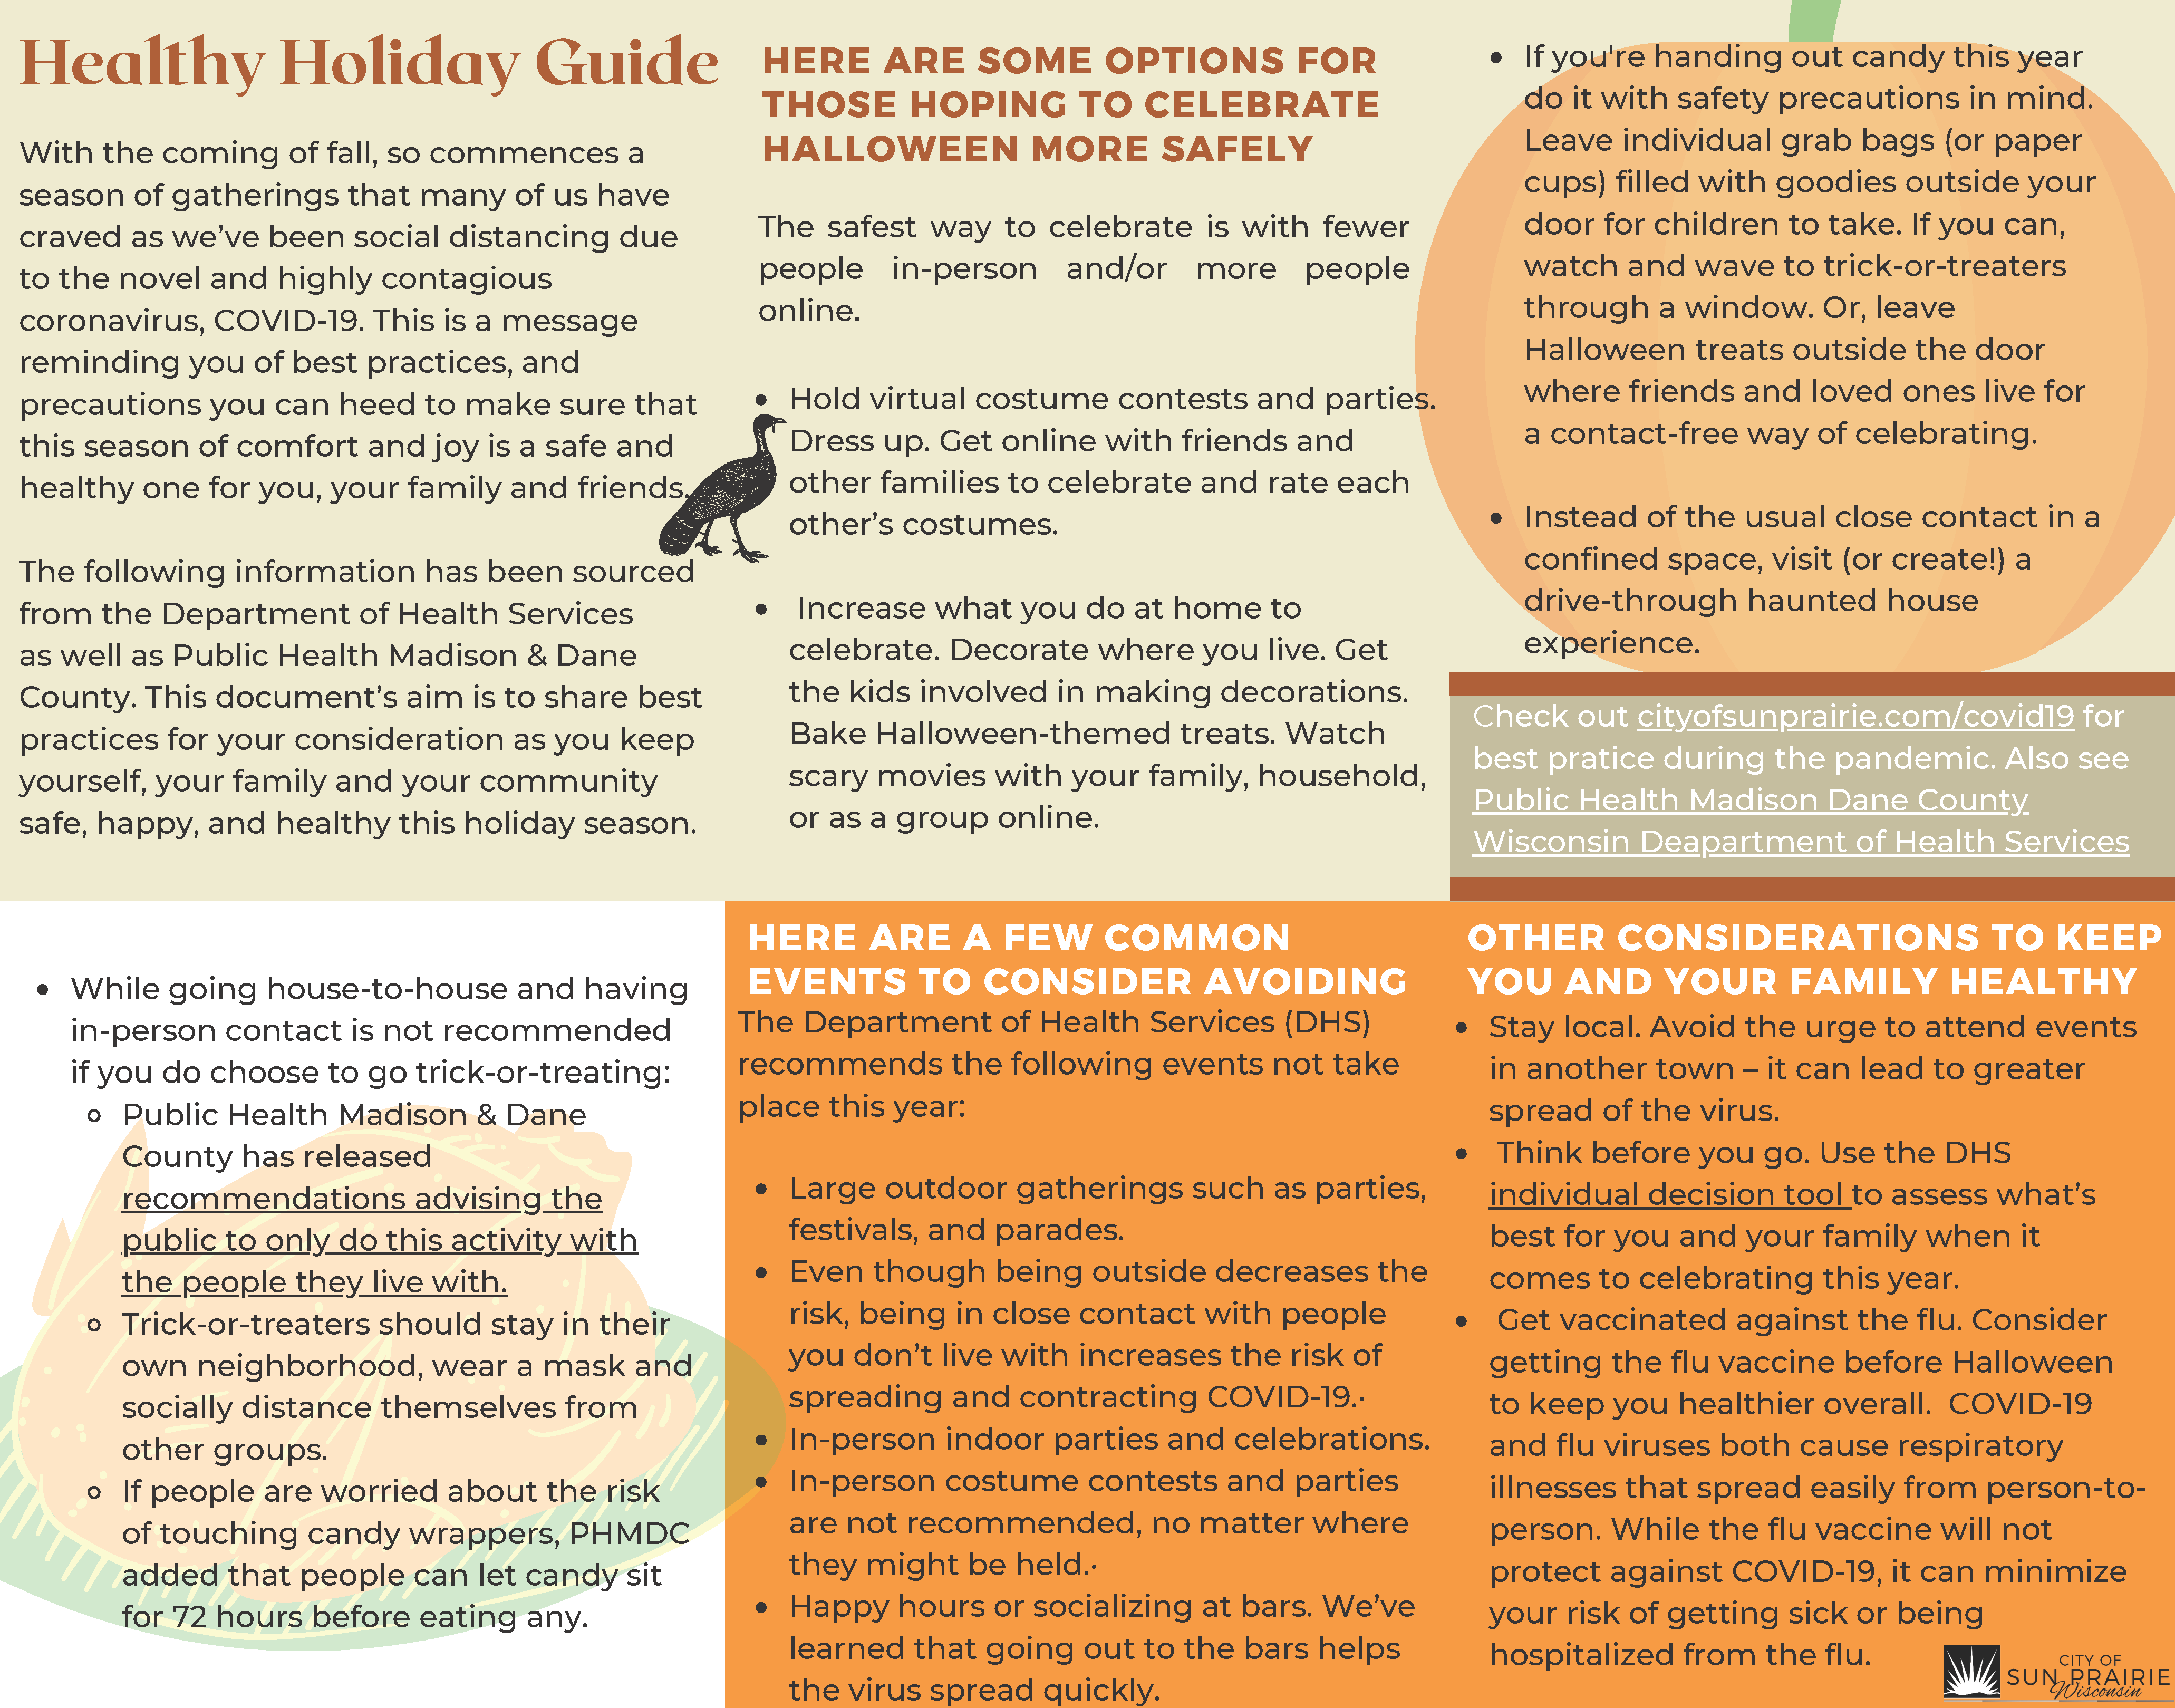 holiday health guide pamphlet Image